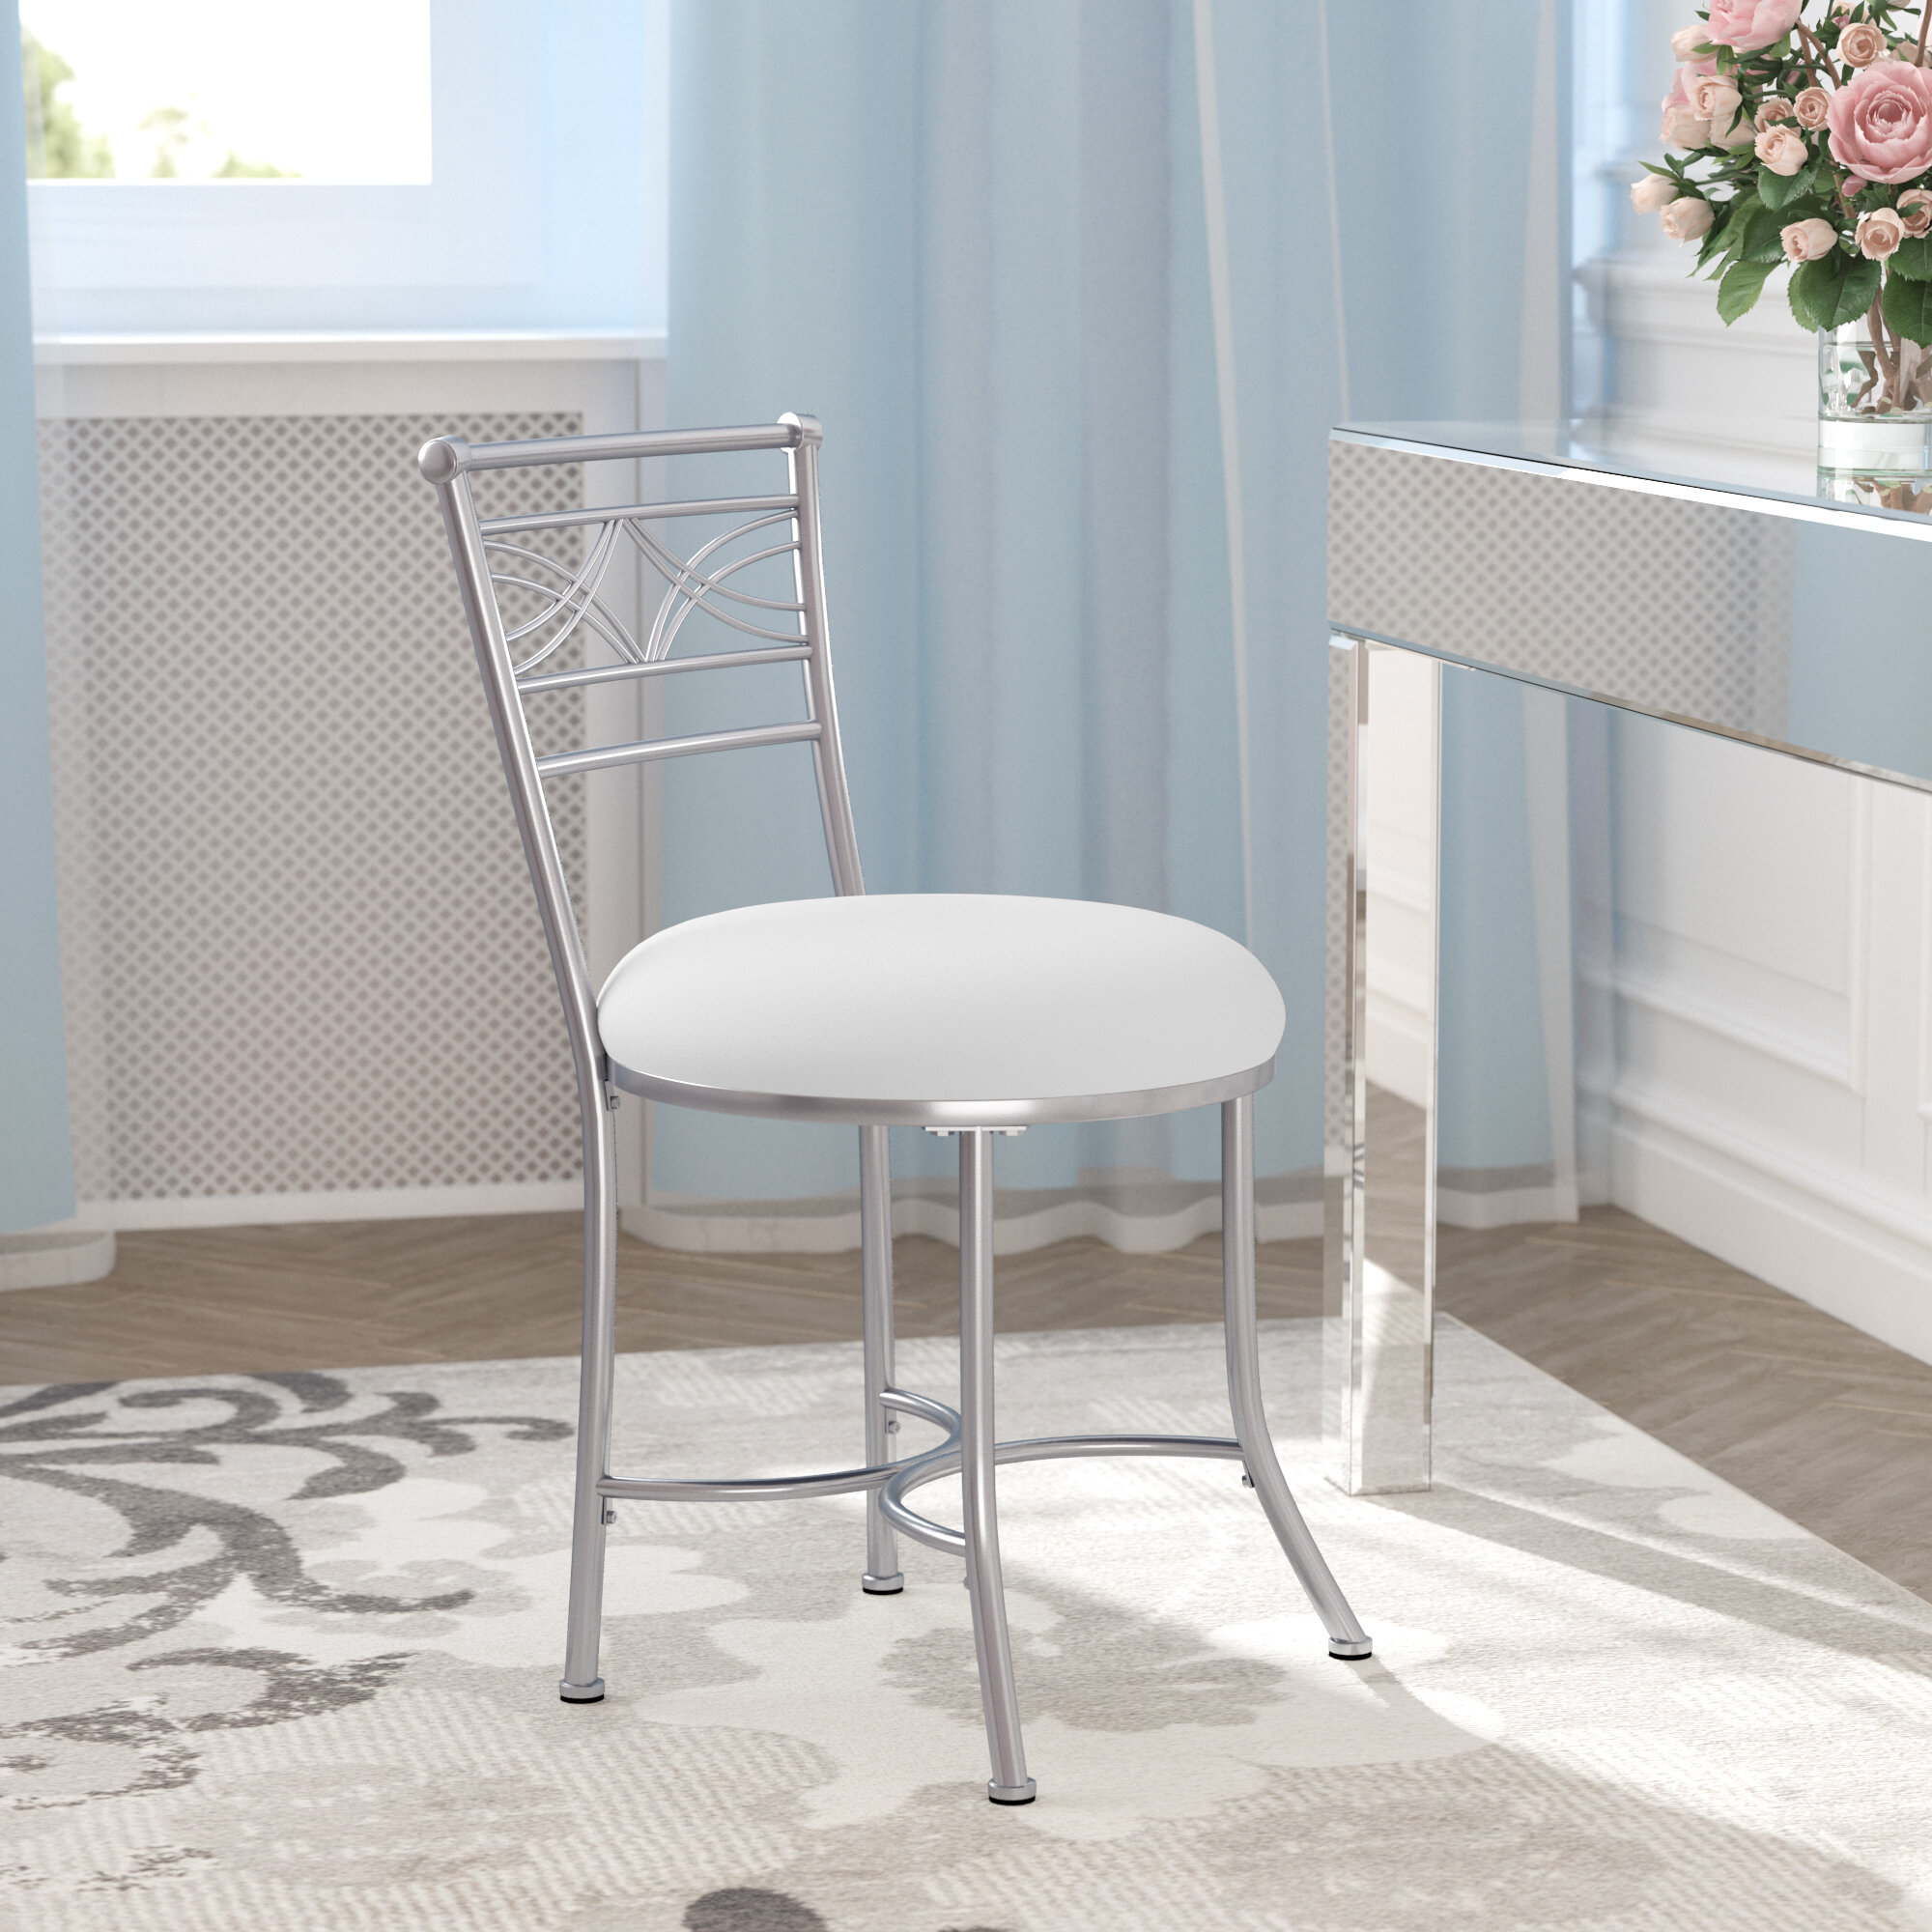 Wayfair Vanity With Back Accent Stools You Ll Love In 2021